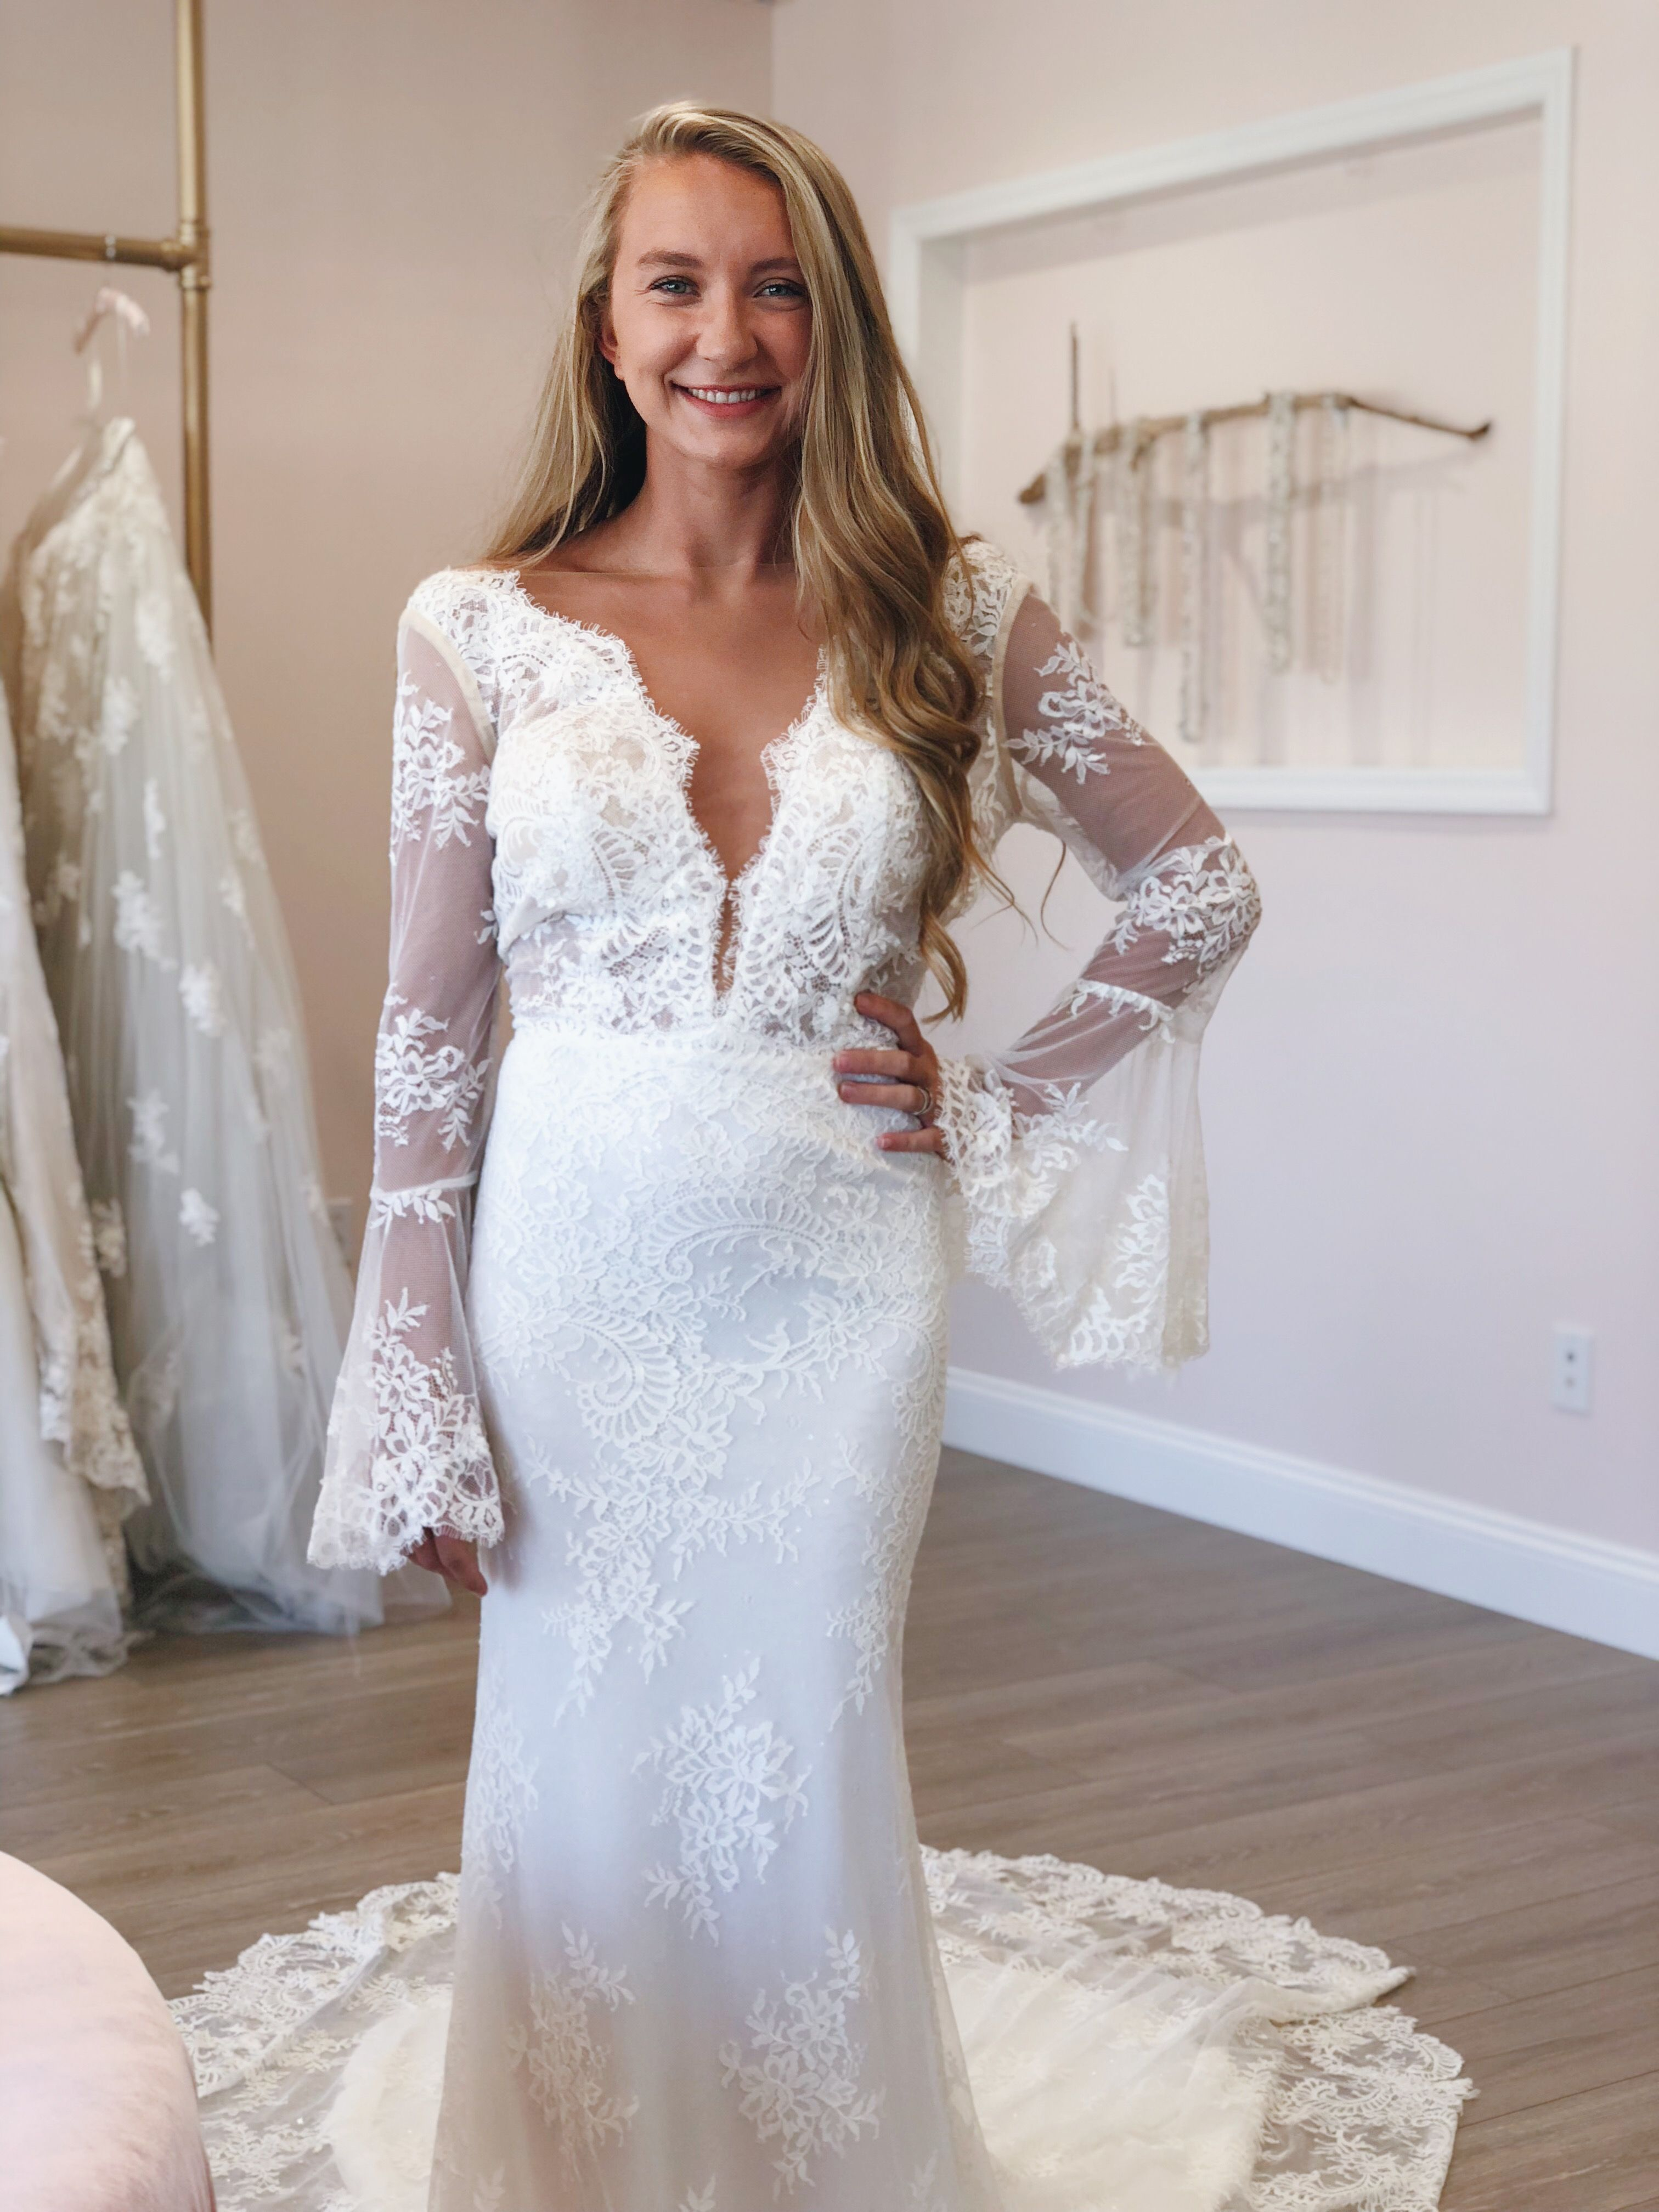 The Perfect Weddingdress For A Bohobride We Are Obsessed With The Amber Dress With It S Long Lacy Train And B Wedding Dresses Boho Bride Bridal Boutique [ 4032 x 3024 Pixel ]